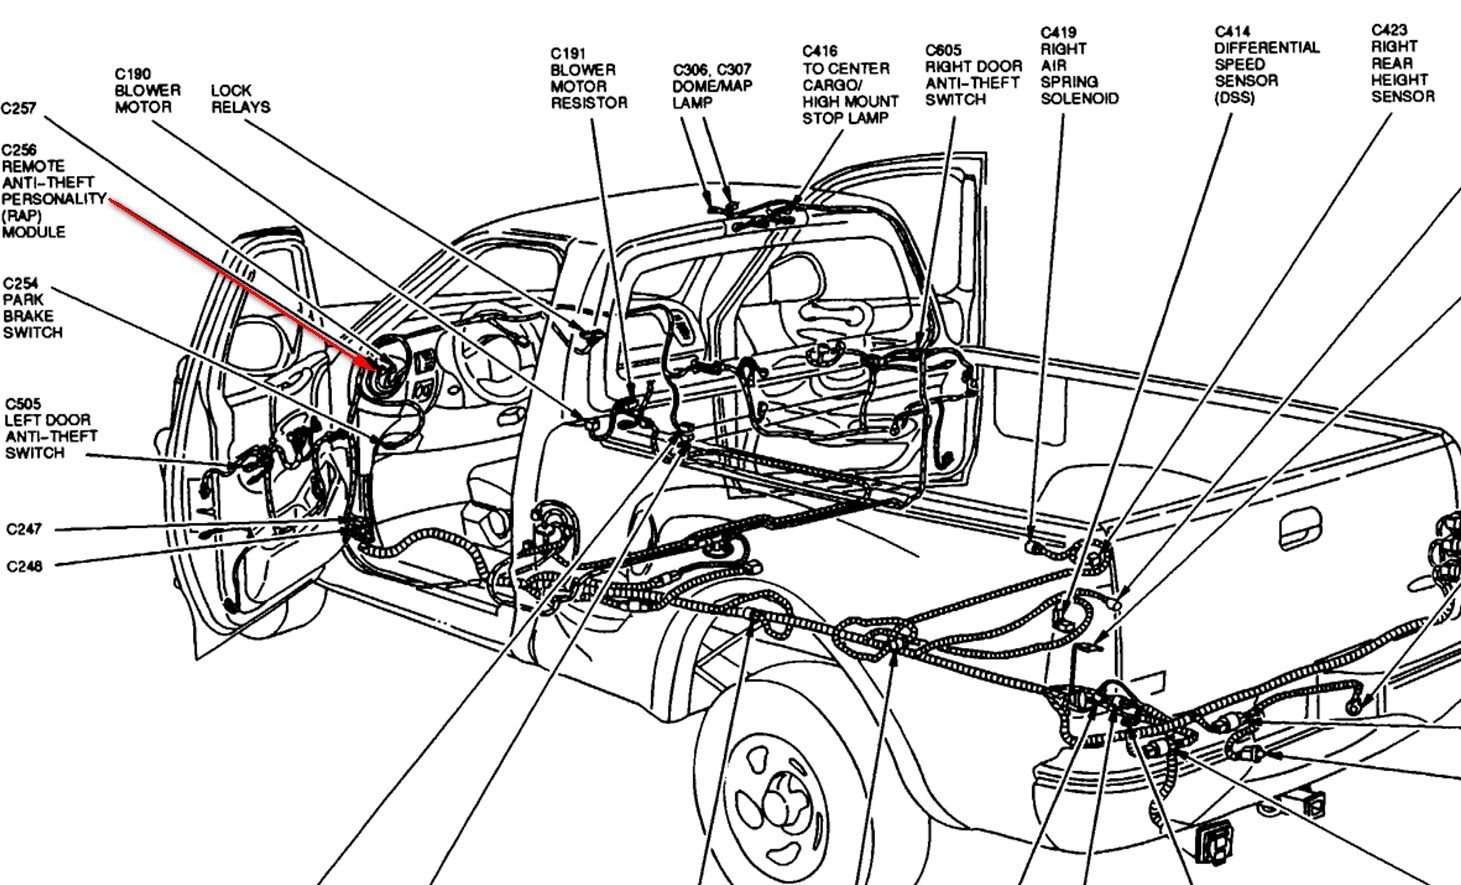 1997 F150 ext cab XLT trim. where is and how do identify the ... Rap Module Ford F Wiring Diagram on